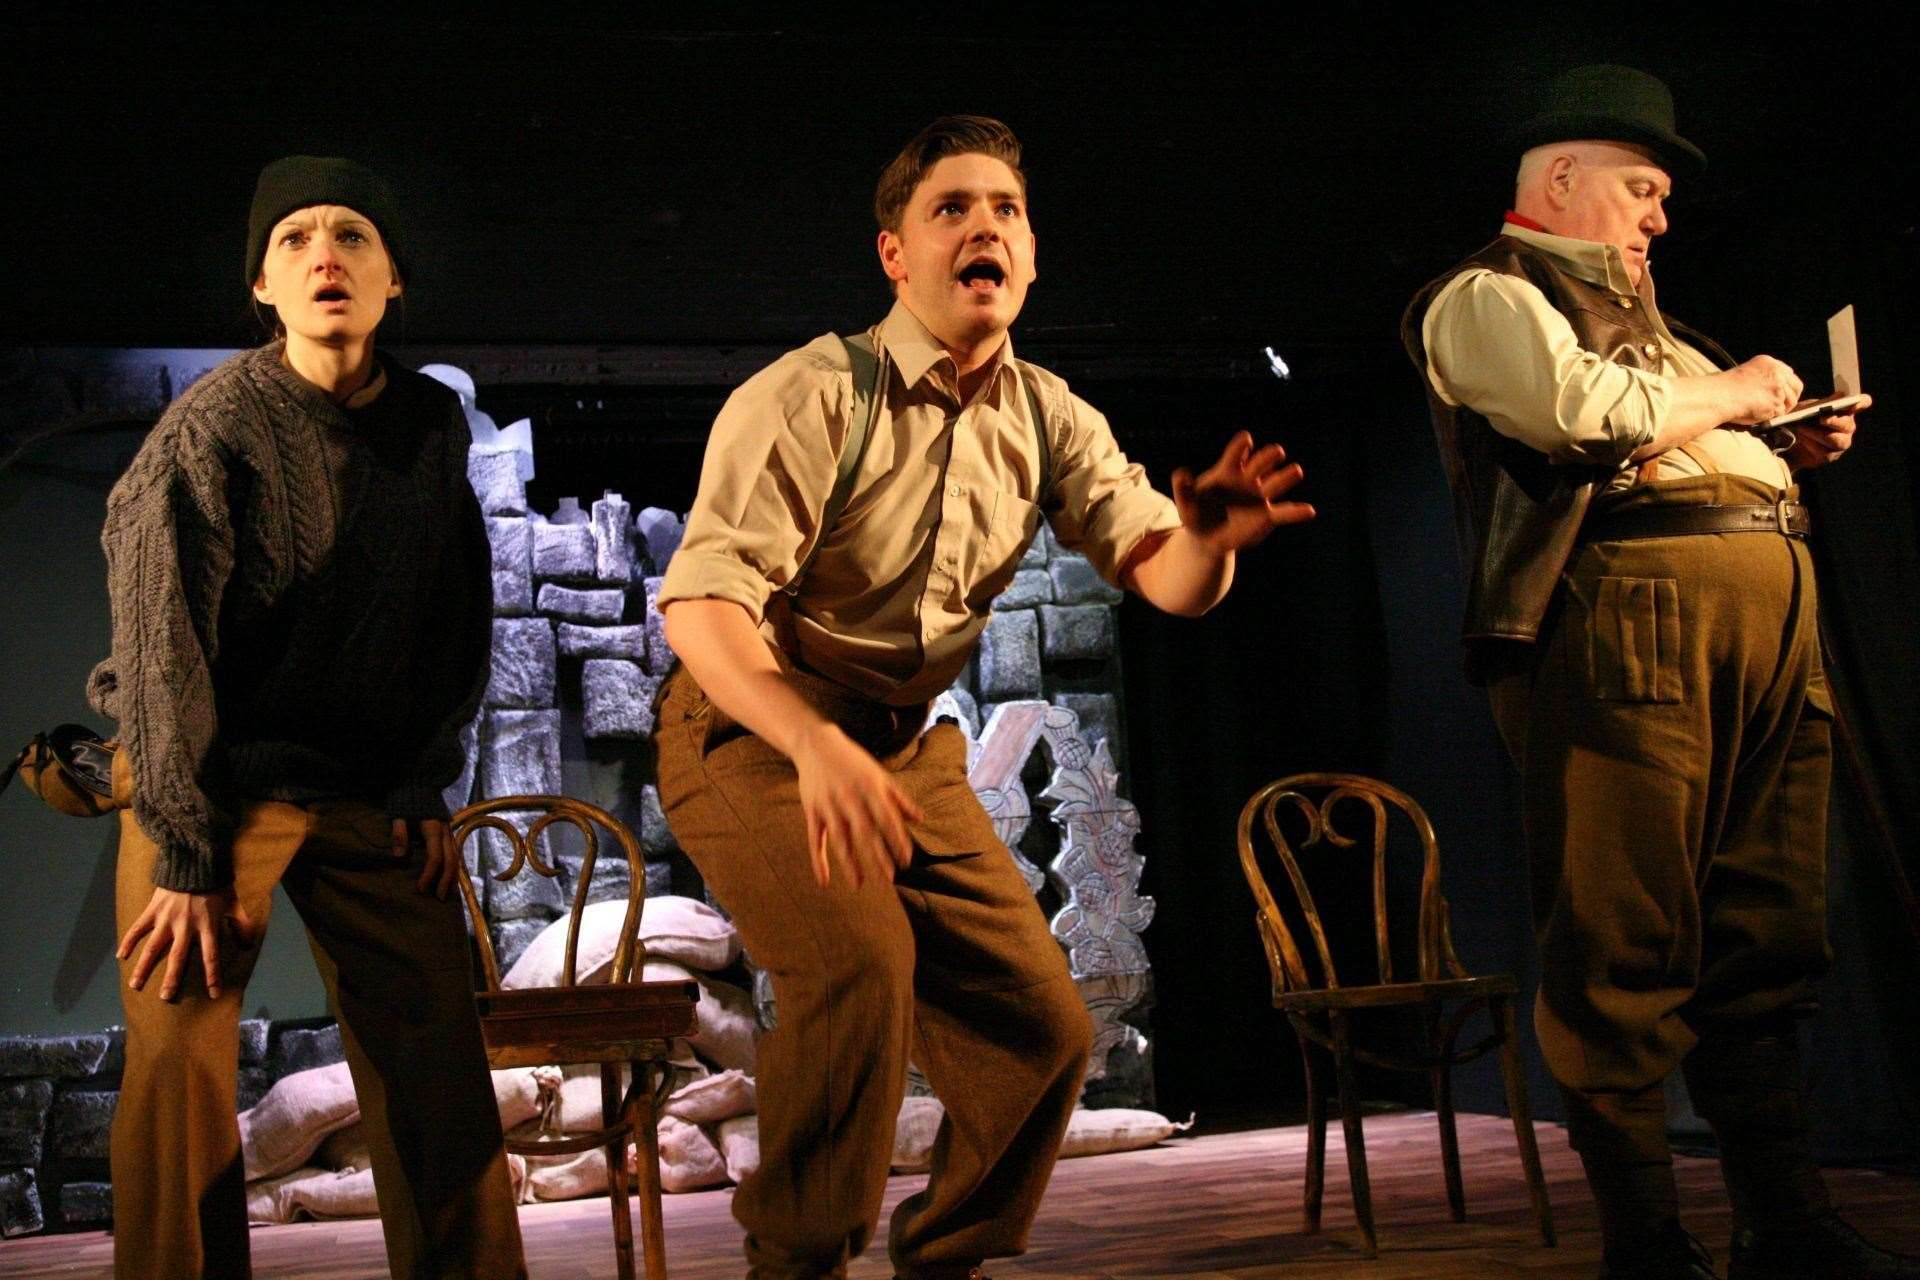 The play, The Beaches of St Valery, depicts the events of 80 years ago.